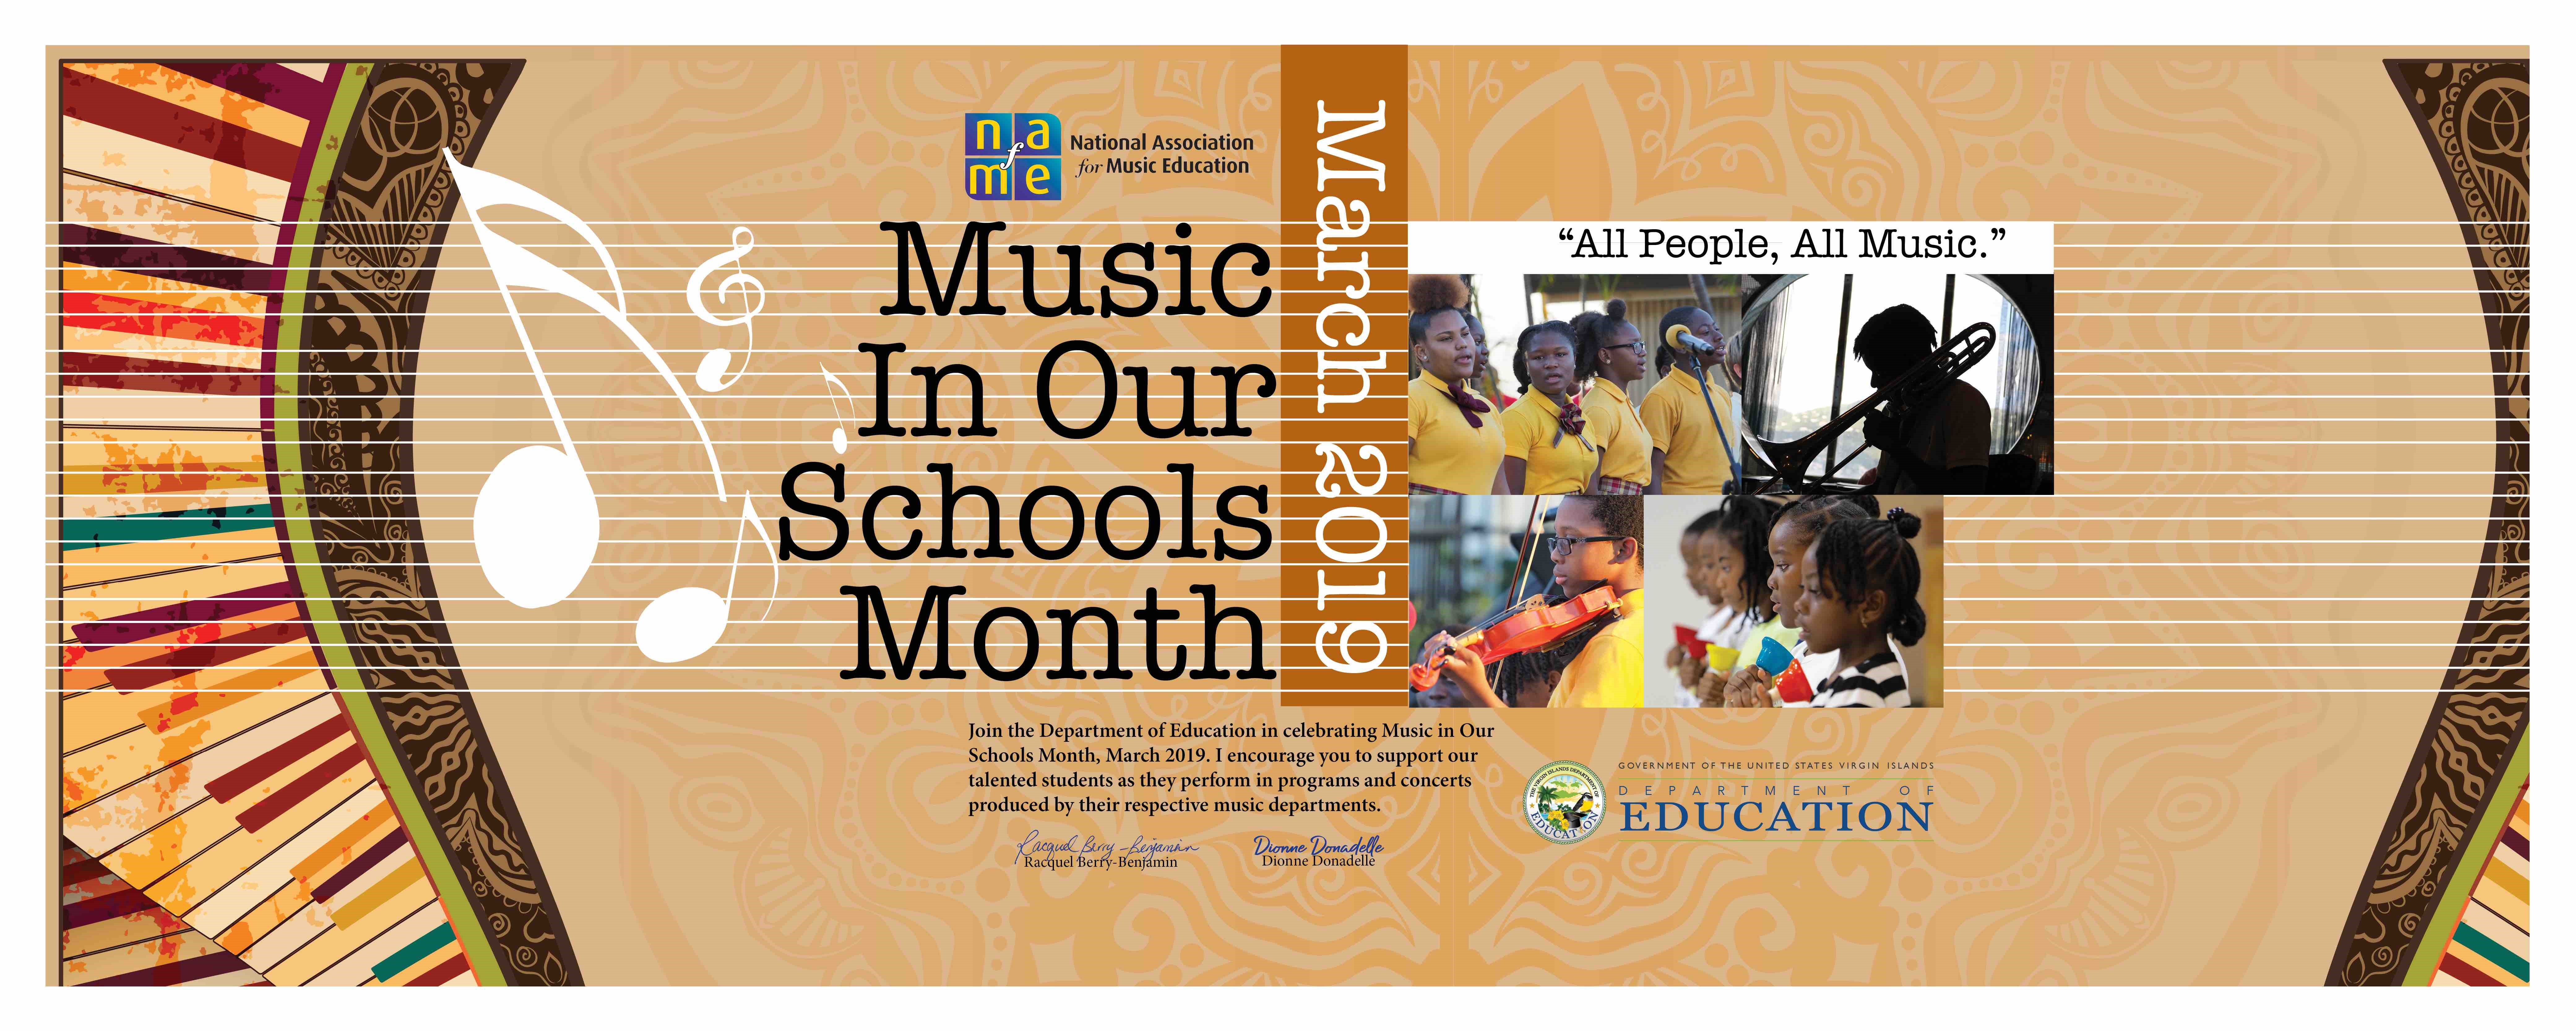 We're Celebrating Music in Our Schools Month!